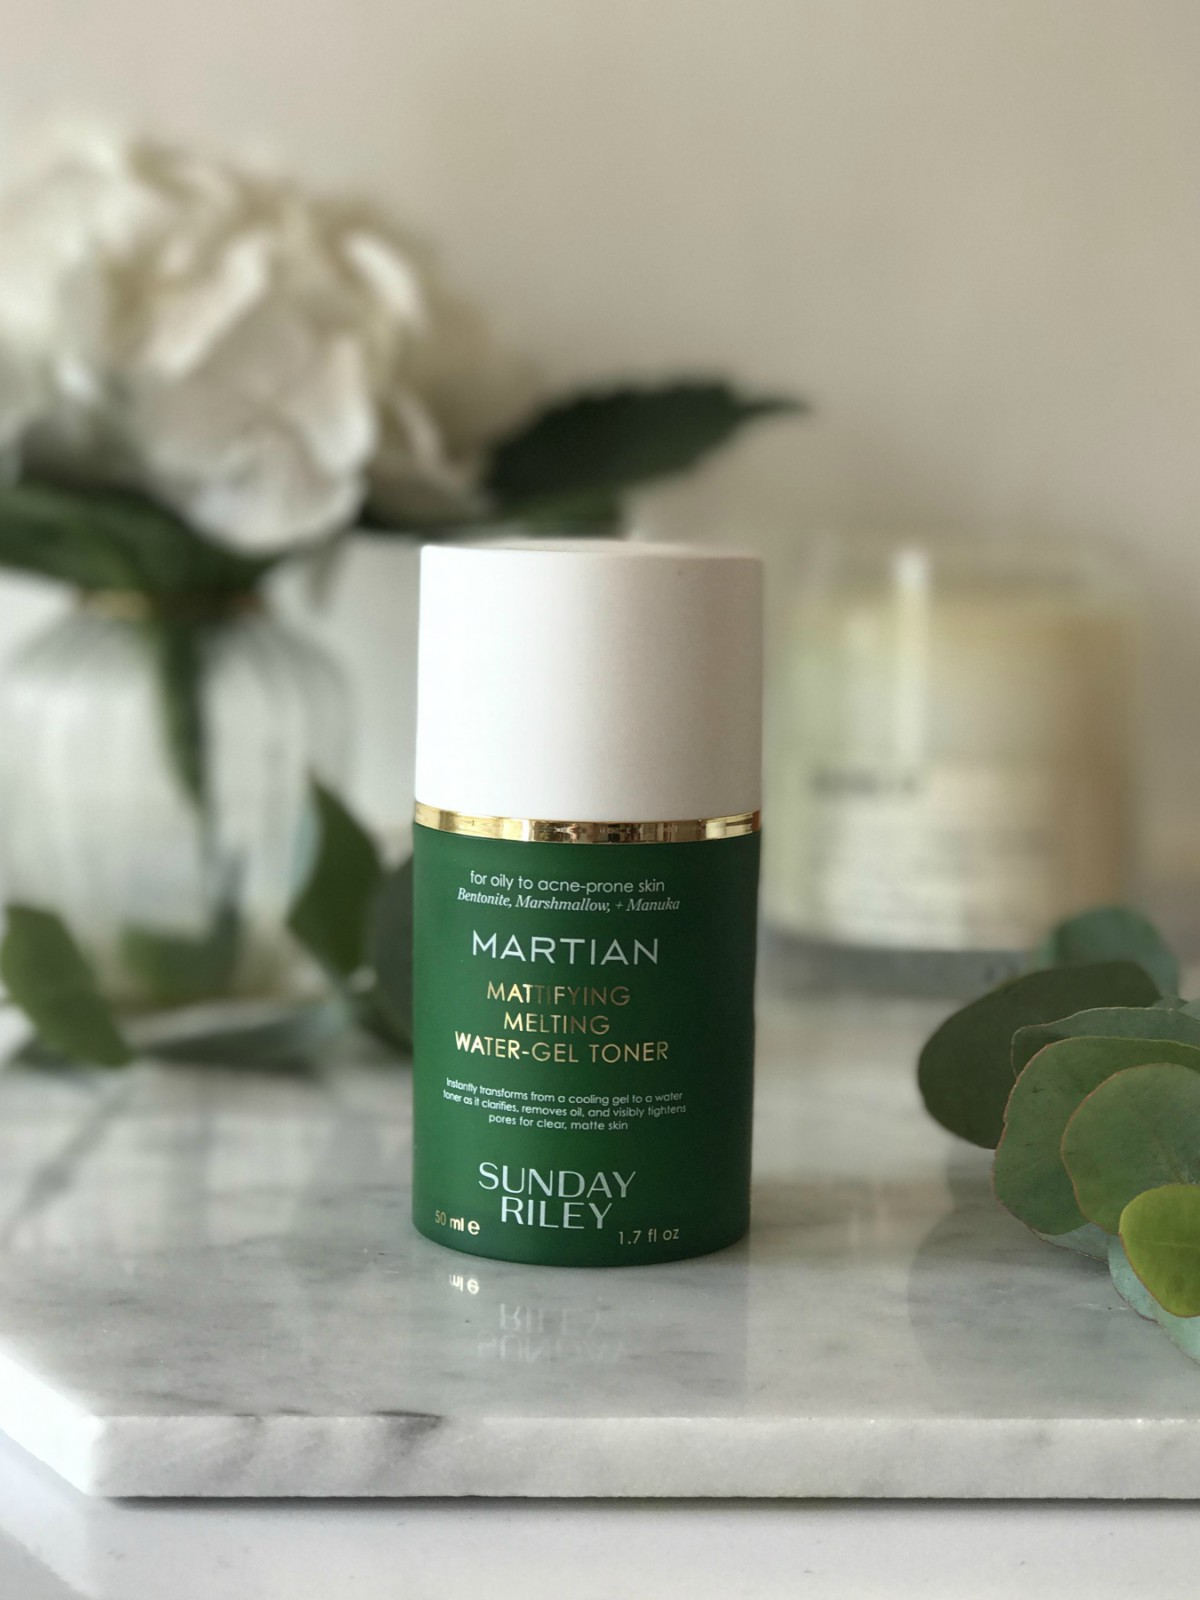 Sunday Riley Martian Mattifying Melting Toner